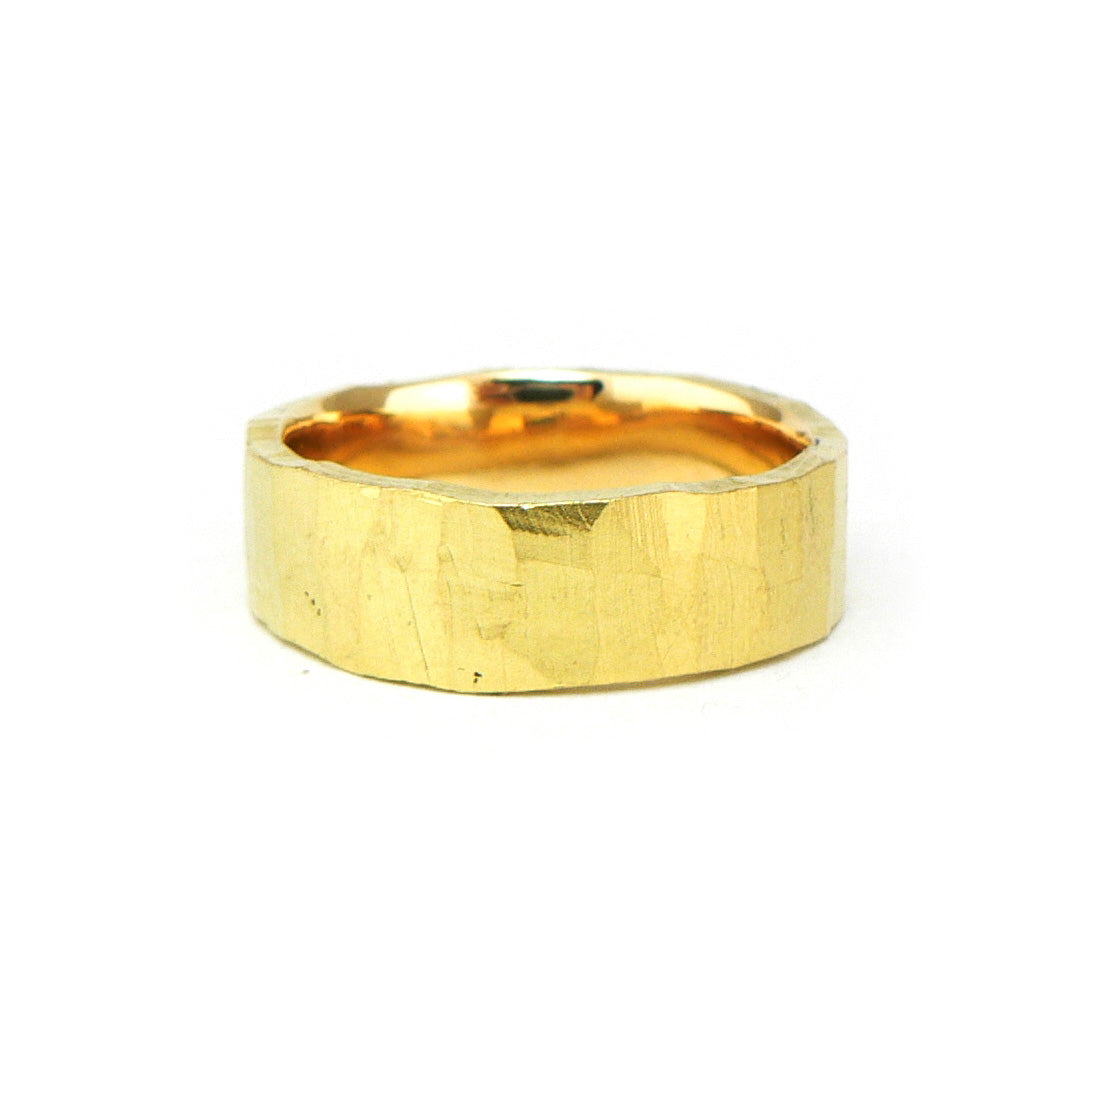 Mens wedding band yellow gold with organic finish